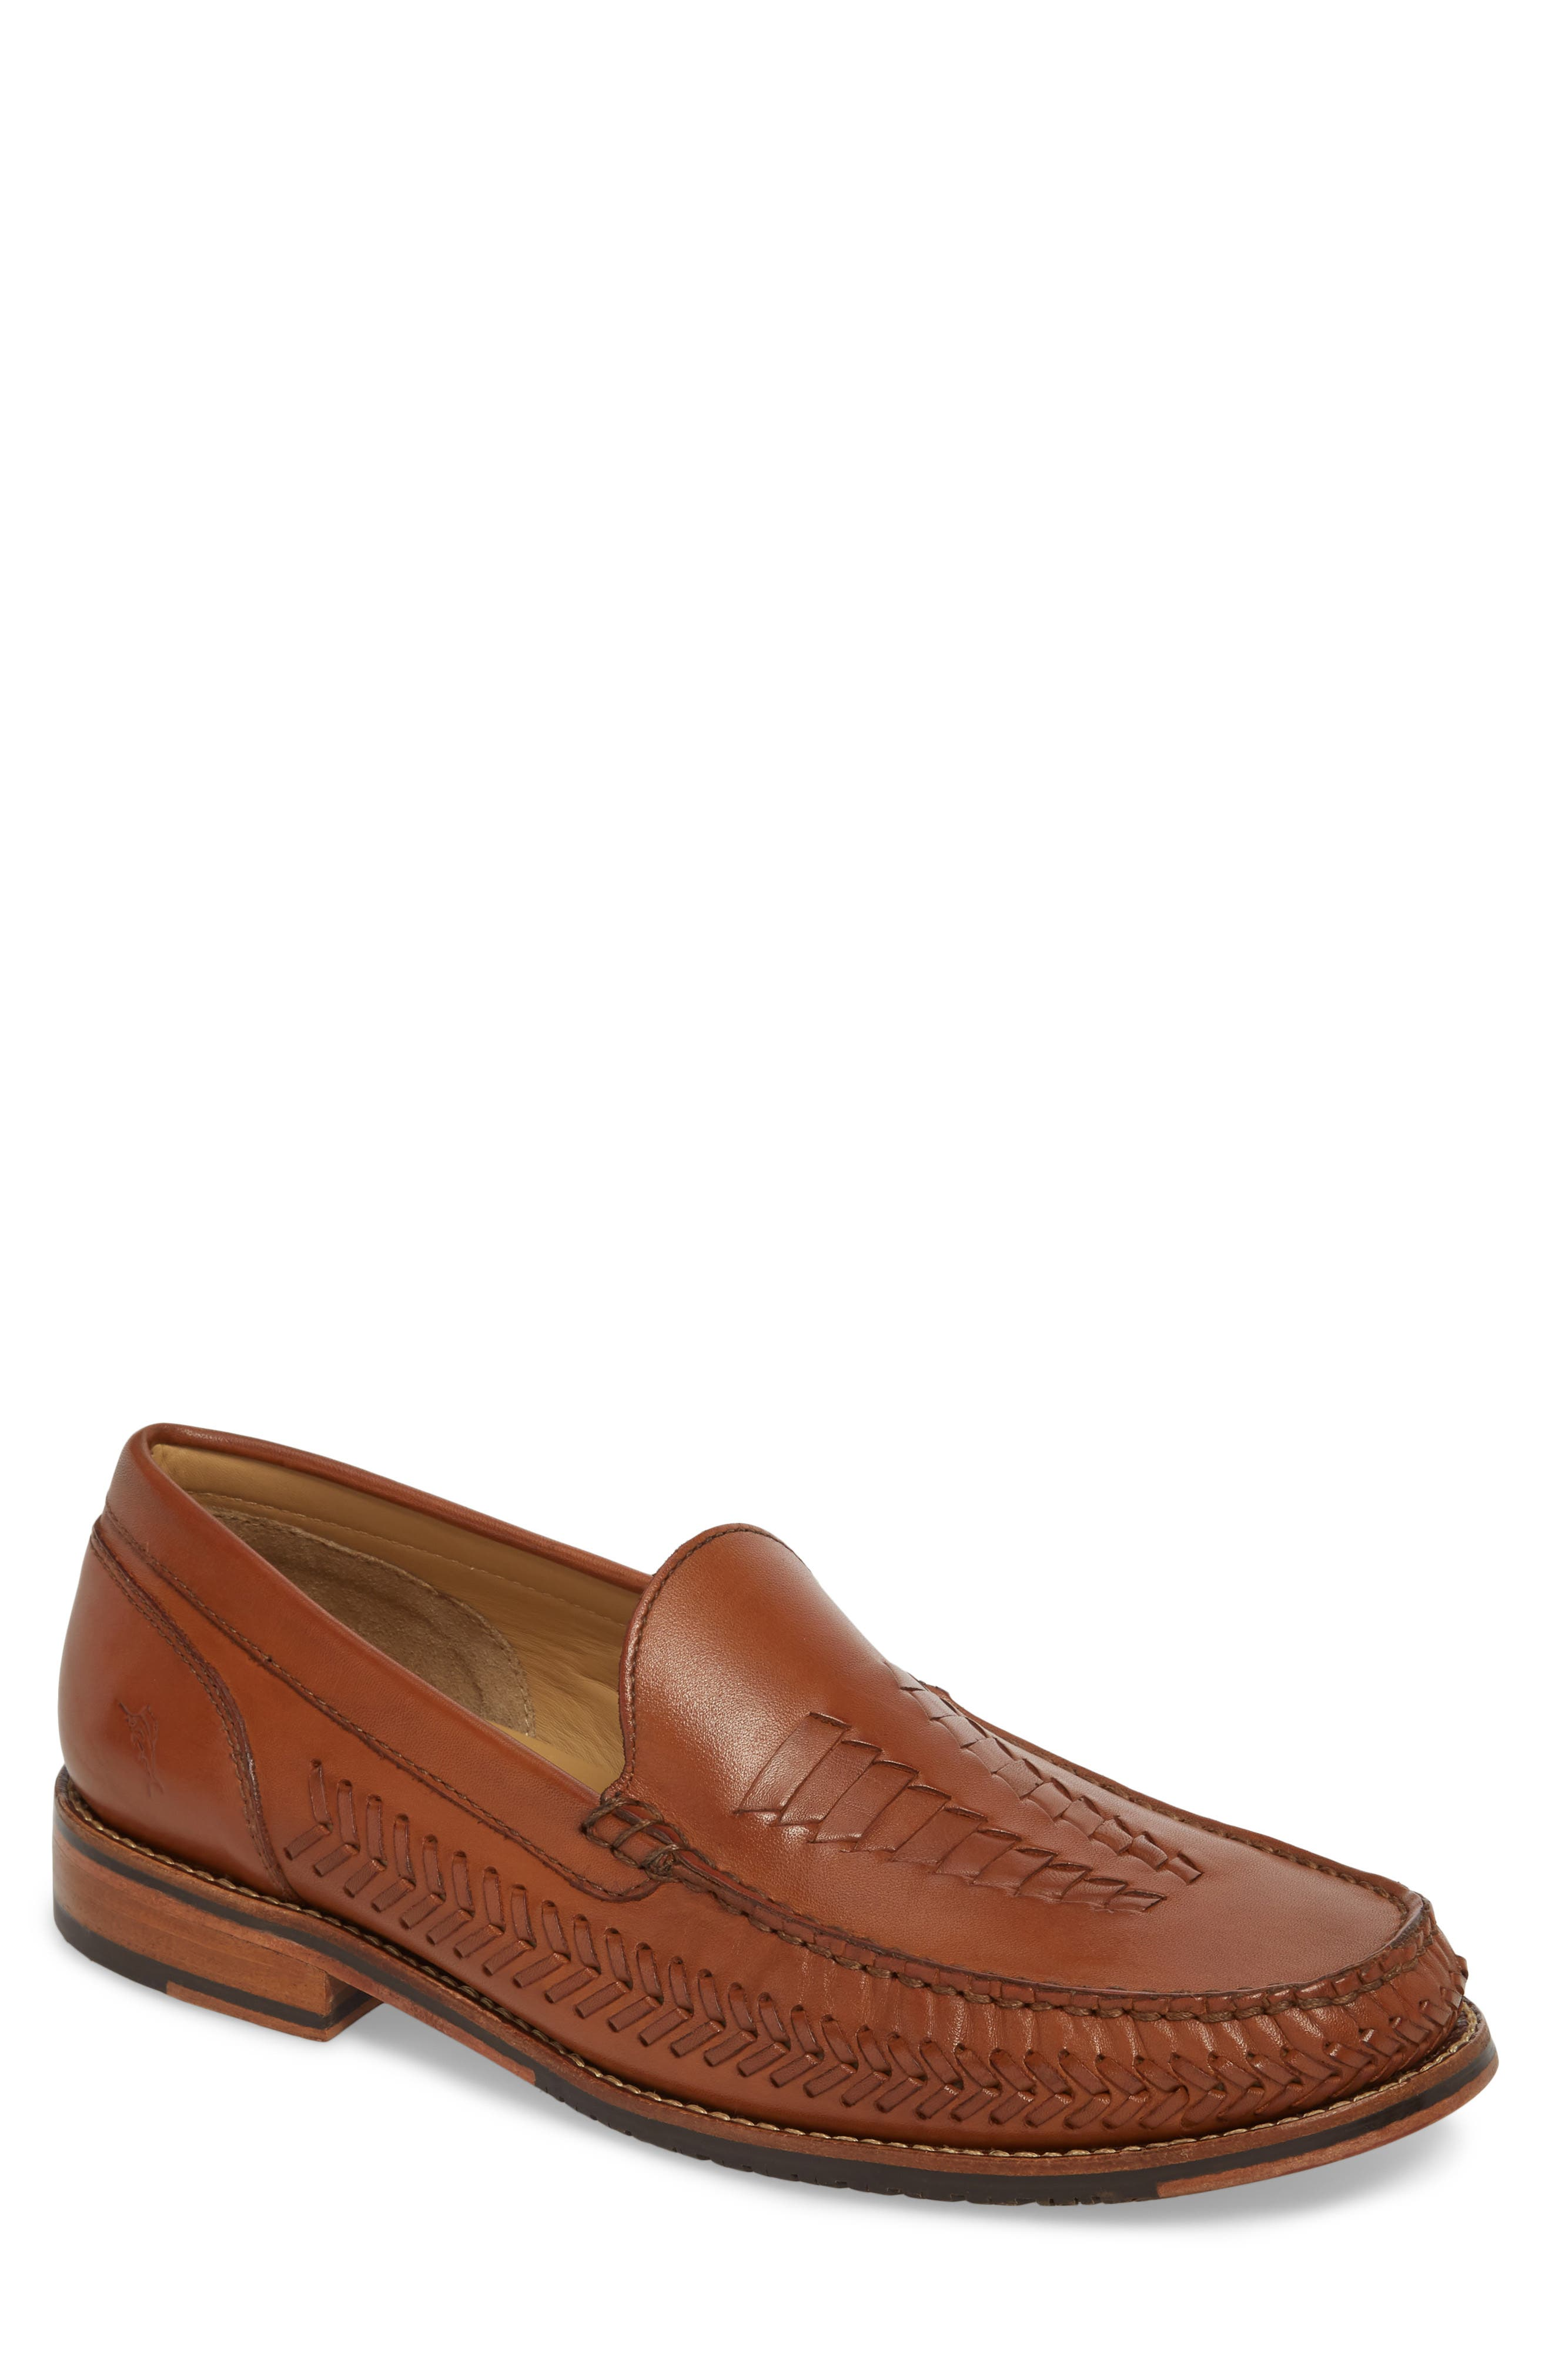 Hasslington Woven Venetian Loafer,                         Main,                         color, TAN LEATHER